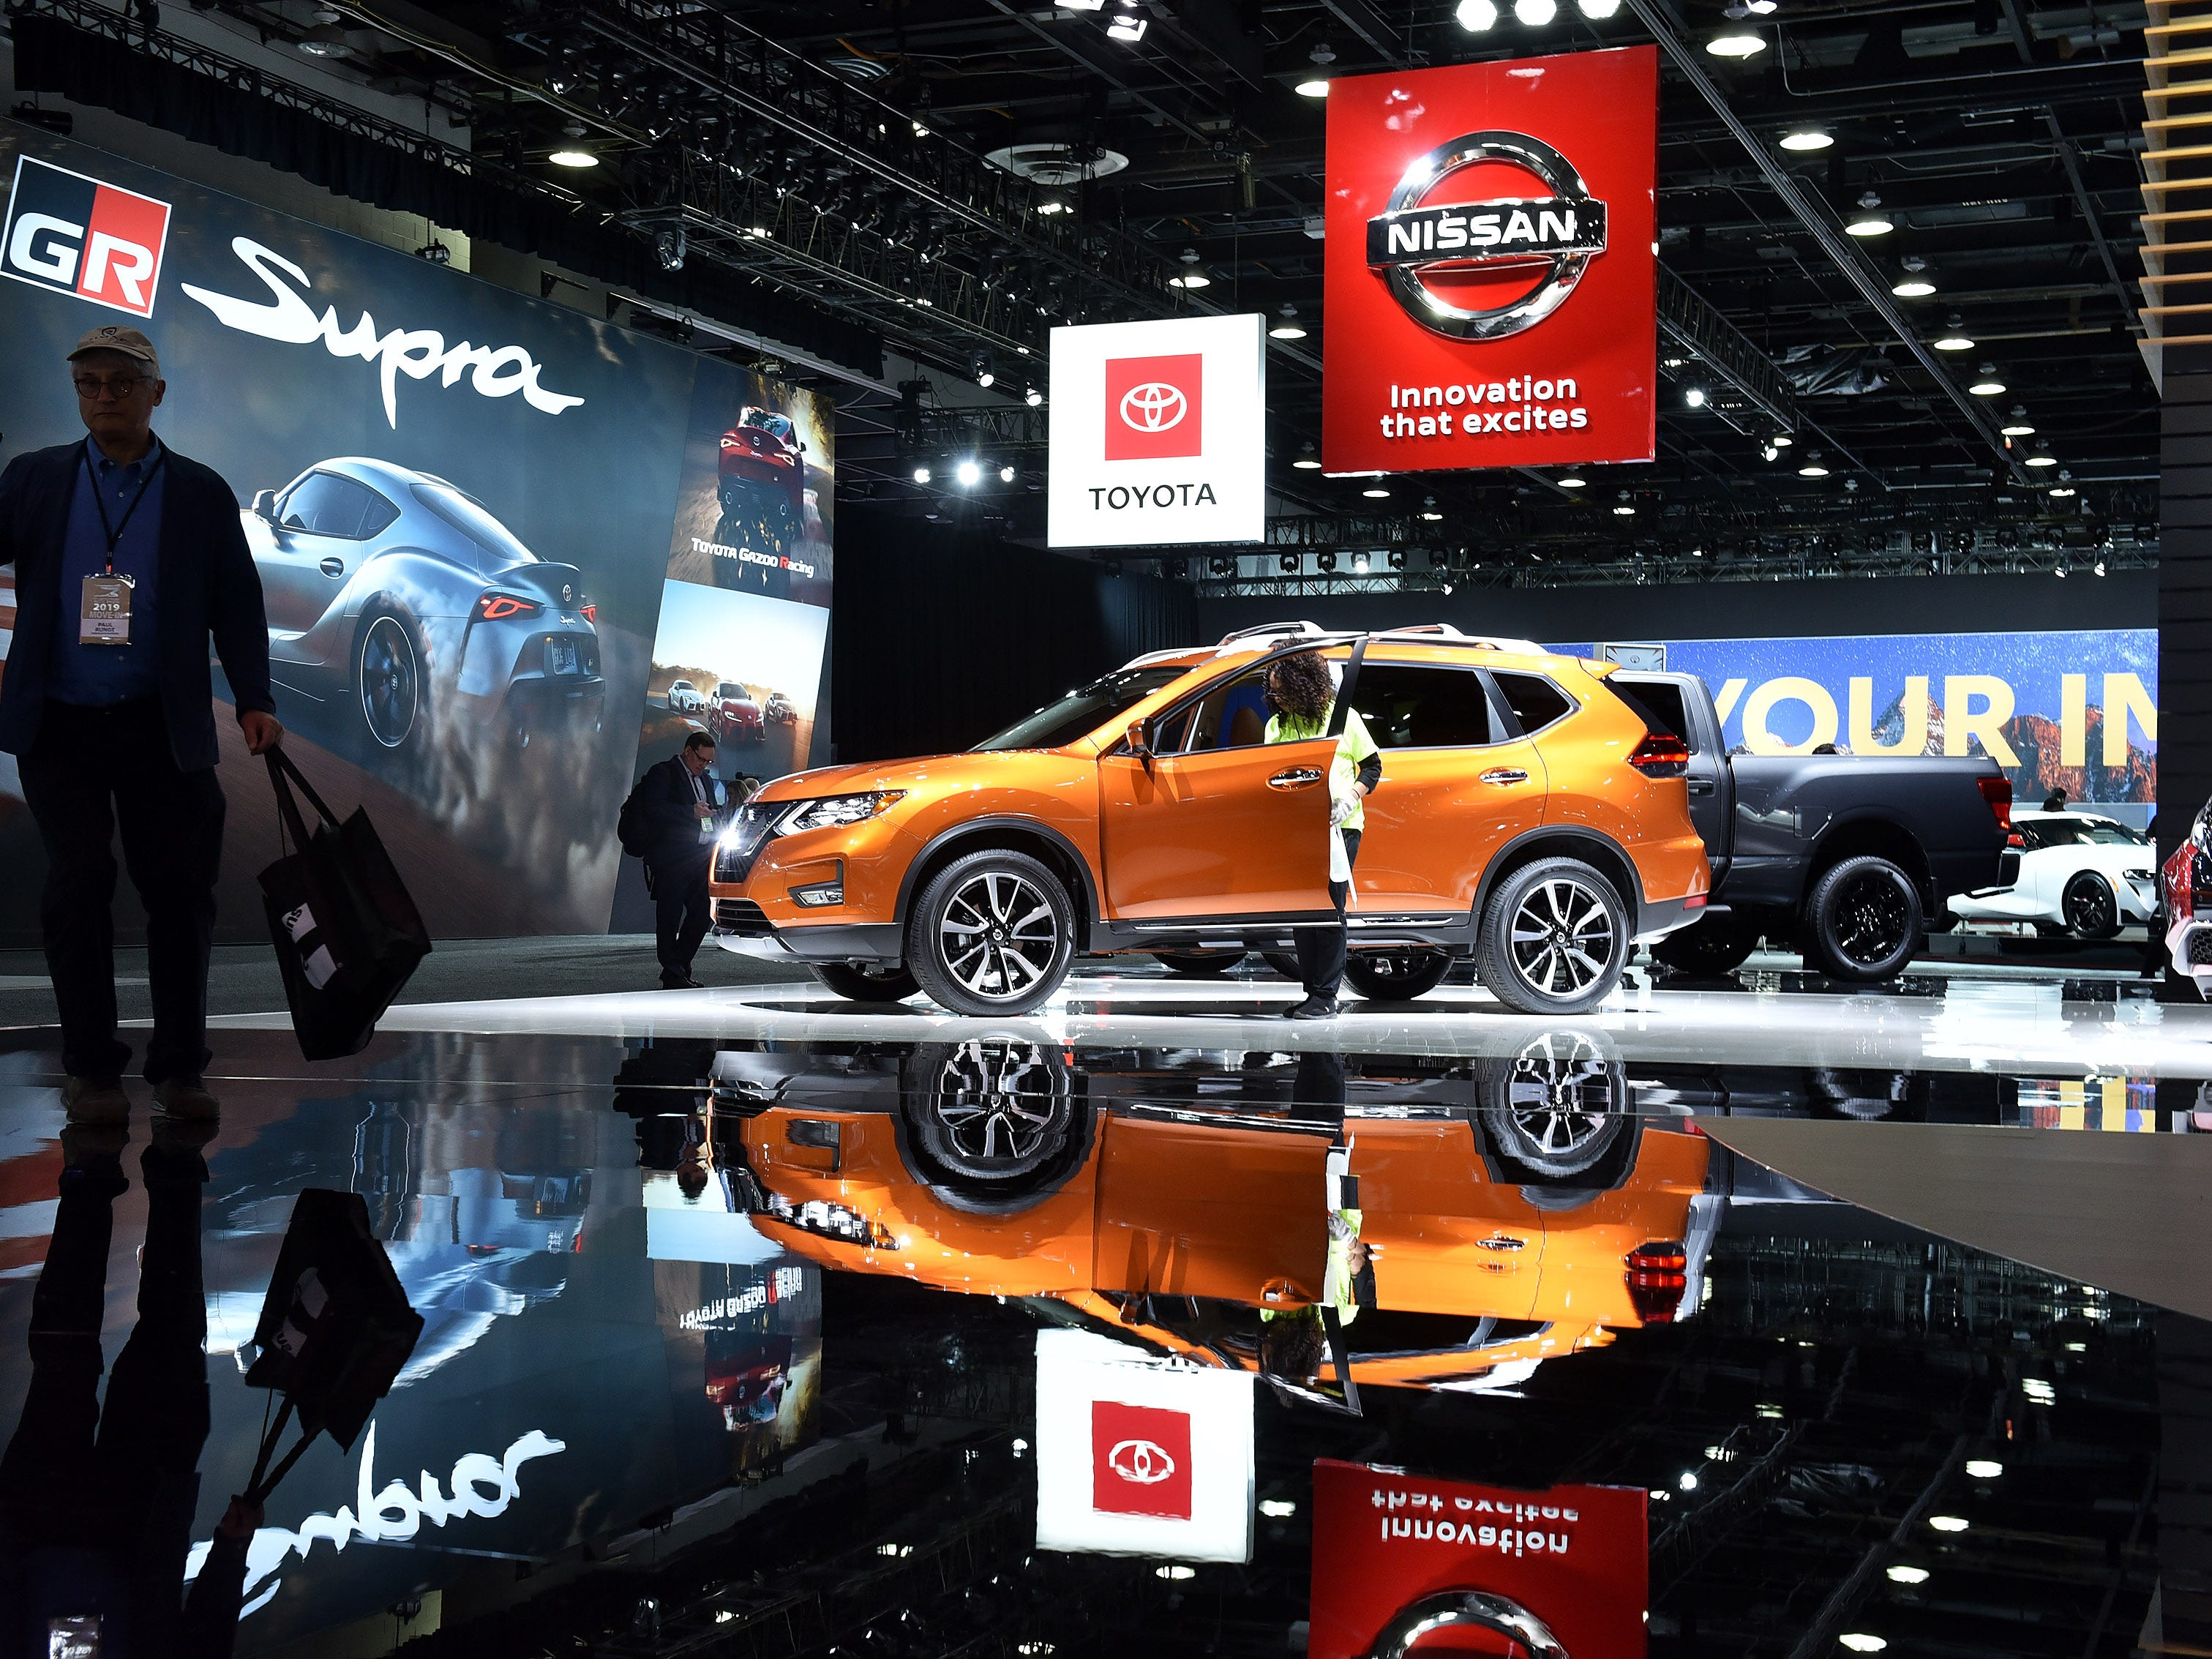 Intech Kelly Services employee Patricia Ursula Brown of Detroit cleans a Nissan Rogue at the North American International Auto Show at Cobo Center in Detroit on Jan. 14, 2019.